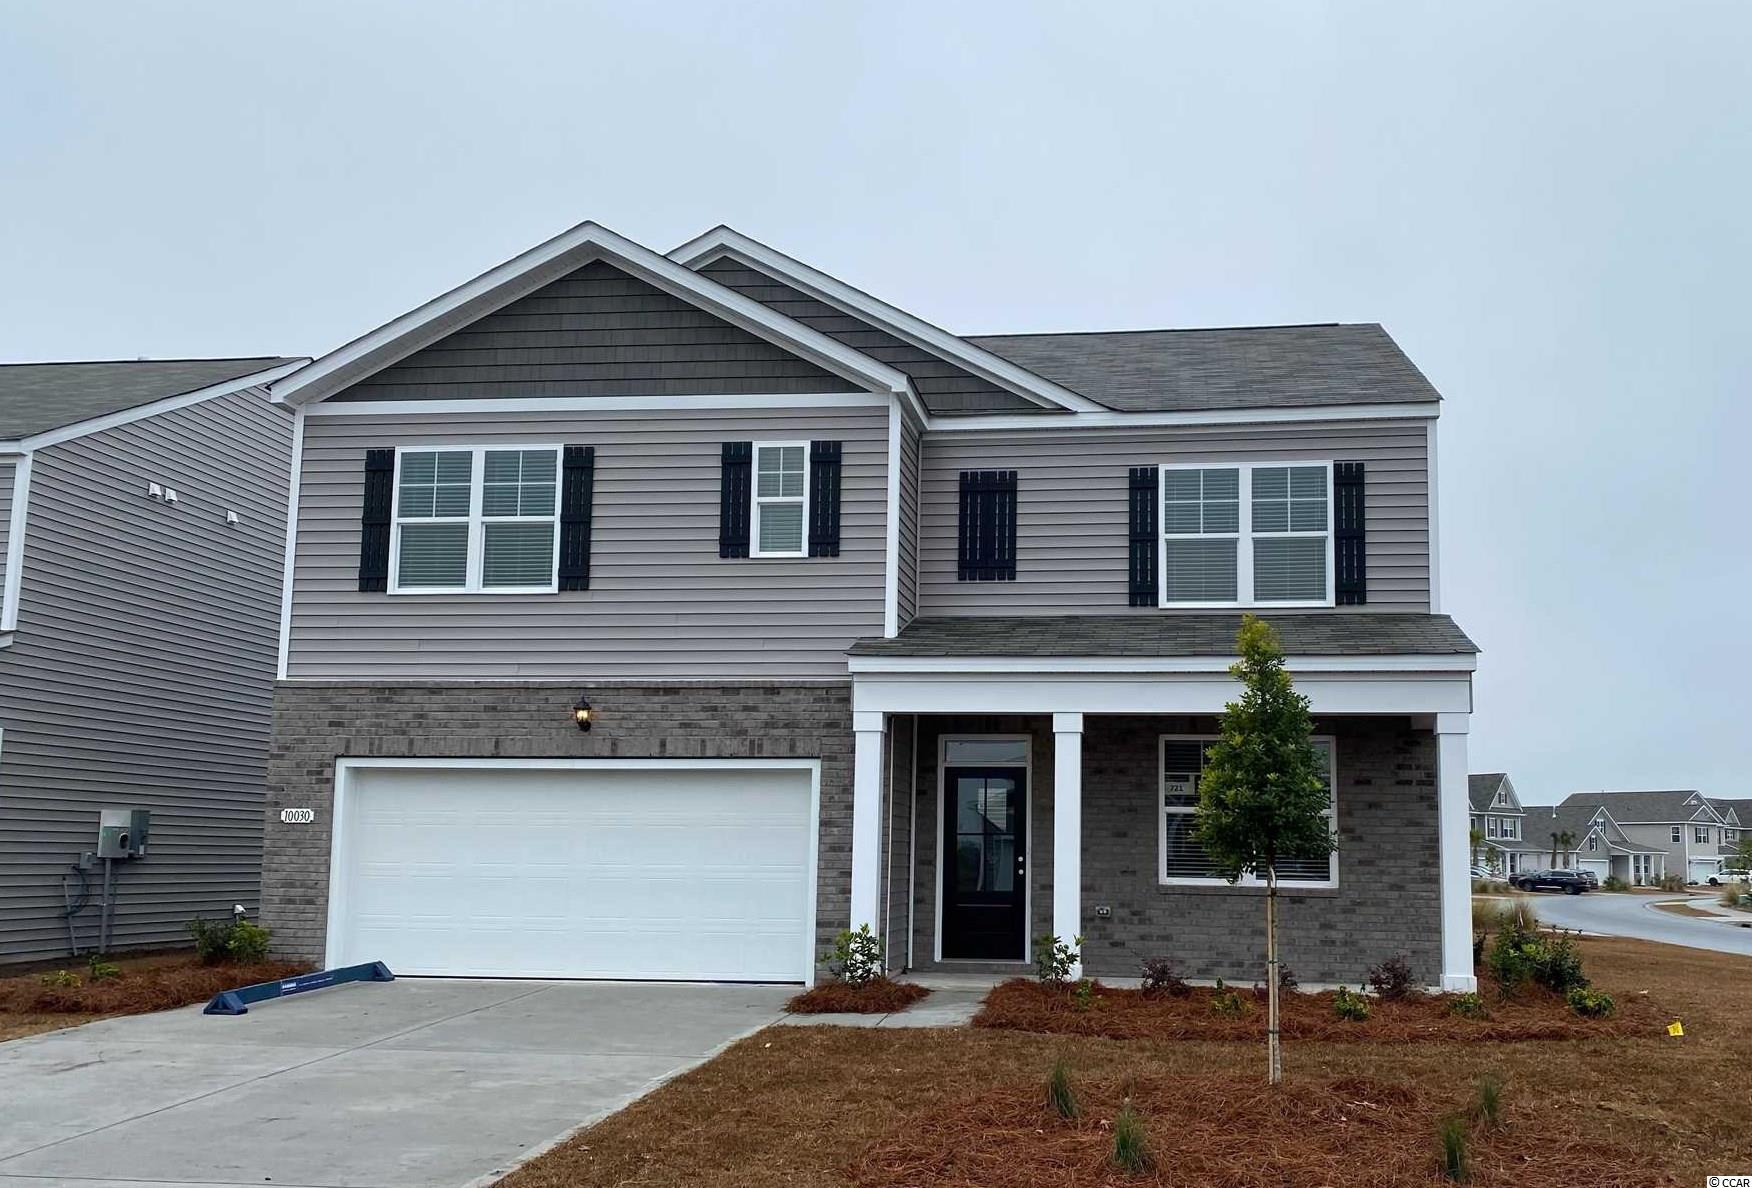 Your style, your way. This expansive plan offers so many great features! Open concept living room, dining room, and kitchen plus a flex space with French doors that could be a dedicated home office or formal dining room. A bedroom with full bath on the main level is great for guests visiting you at the beach and the rear screen porch and patio off the dining area creates a seamless transition from indoor to outdoor living. Upstairs you will find the generous owner's suite with two walk-in closets and en suite bath that boasts a double vanity and large shower. The laundry room, remaining 3 bedrooms, and versatile loft space complete the upstairs! Garage door opener, granite in the kitchen, laminate flooring in the main living areas, and our industry leading smart home technology package all included!  *Photos are of similar Hayden home. (Home and community information, including pricing, included features, terms, availability and amenities, are subject to change prior to sale at any time without notice or obligation. Square footages are approximate. Pictures, photographs, colors, features, and sizes are for illustration purposes only and will vary from the homes as built. Equal housing opportunity builder.)